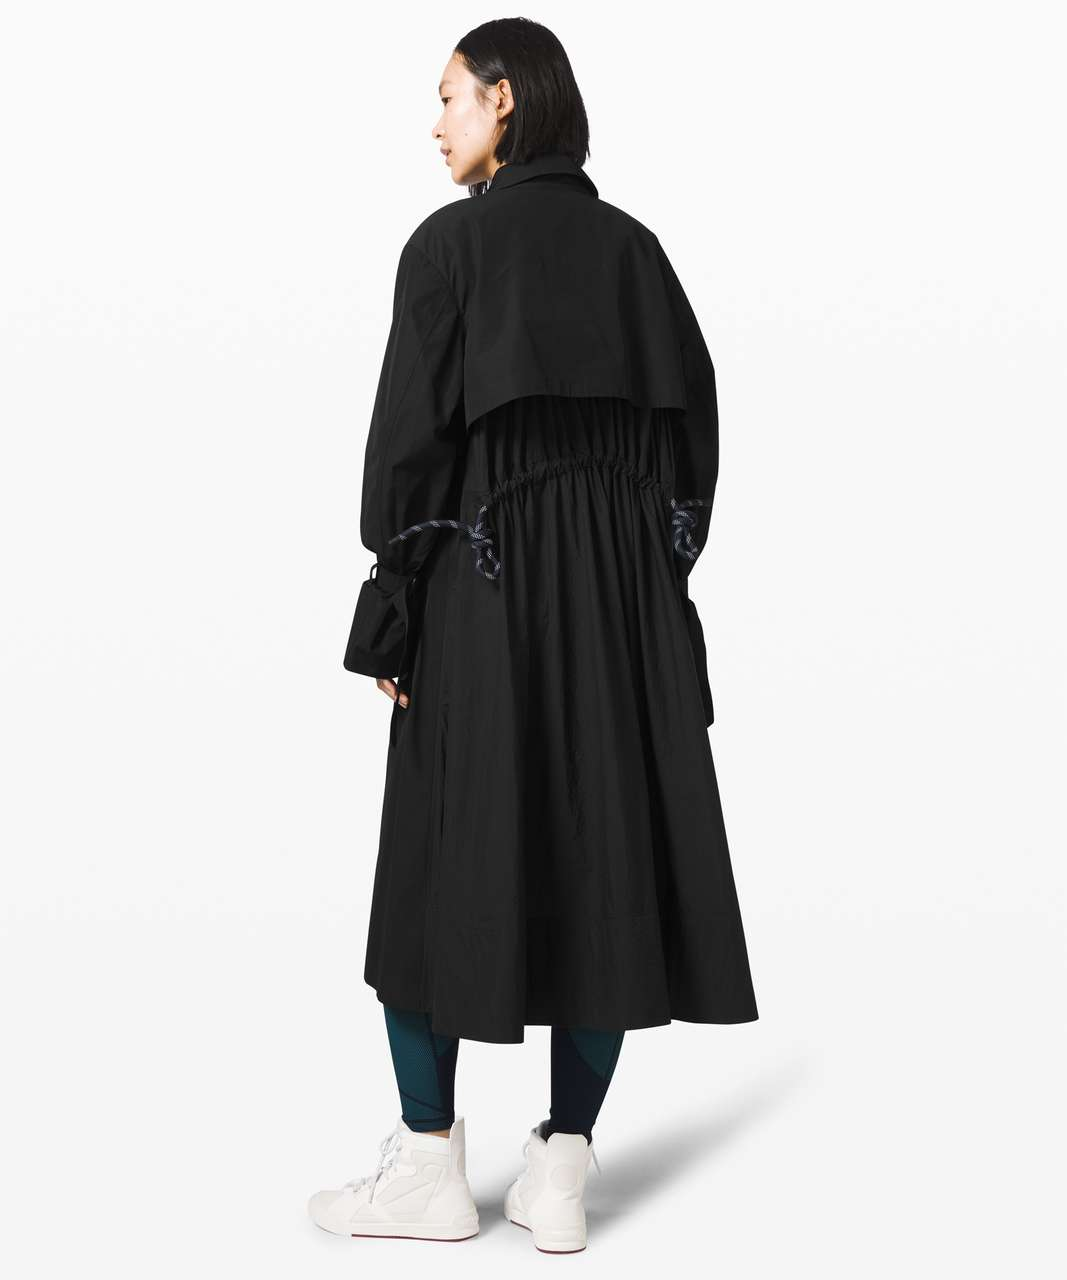 Lululemon Face Forward Trench Coat *lululemon x Roksanda - Black